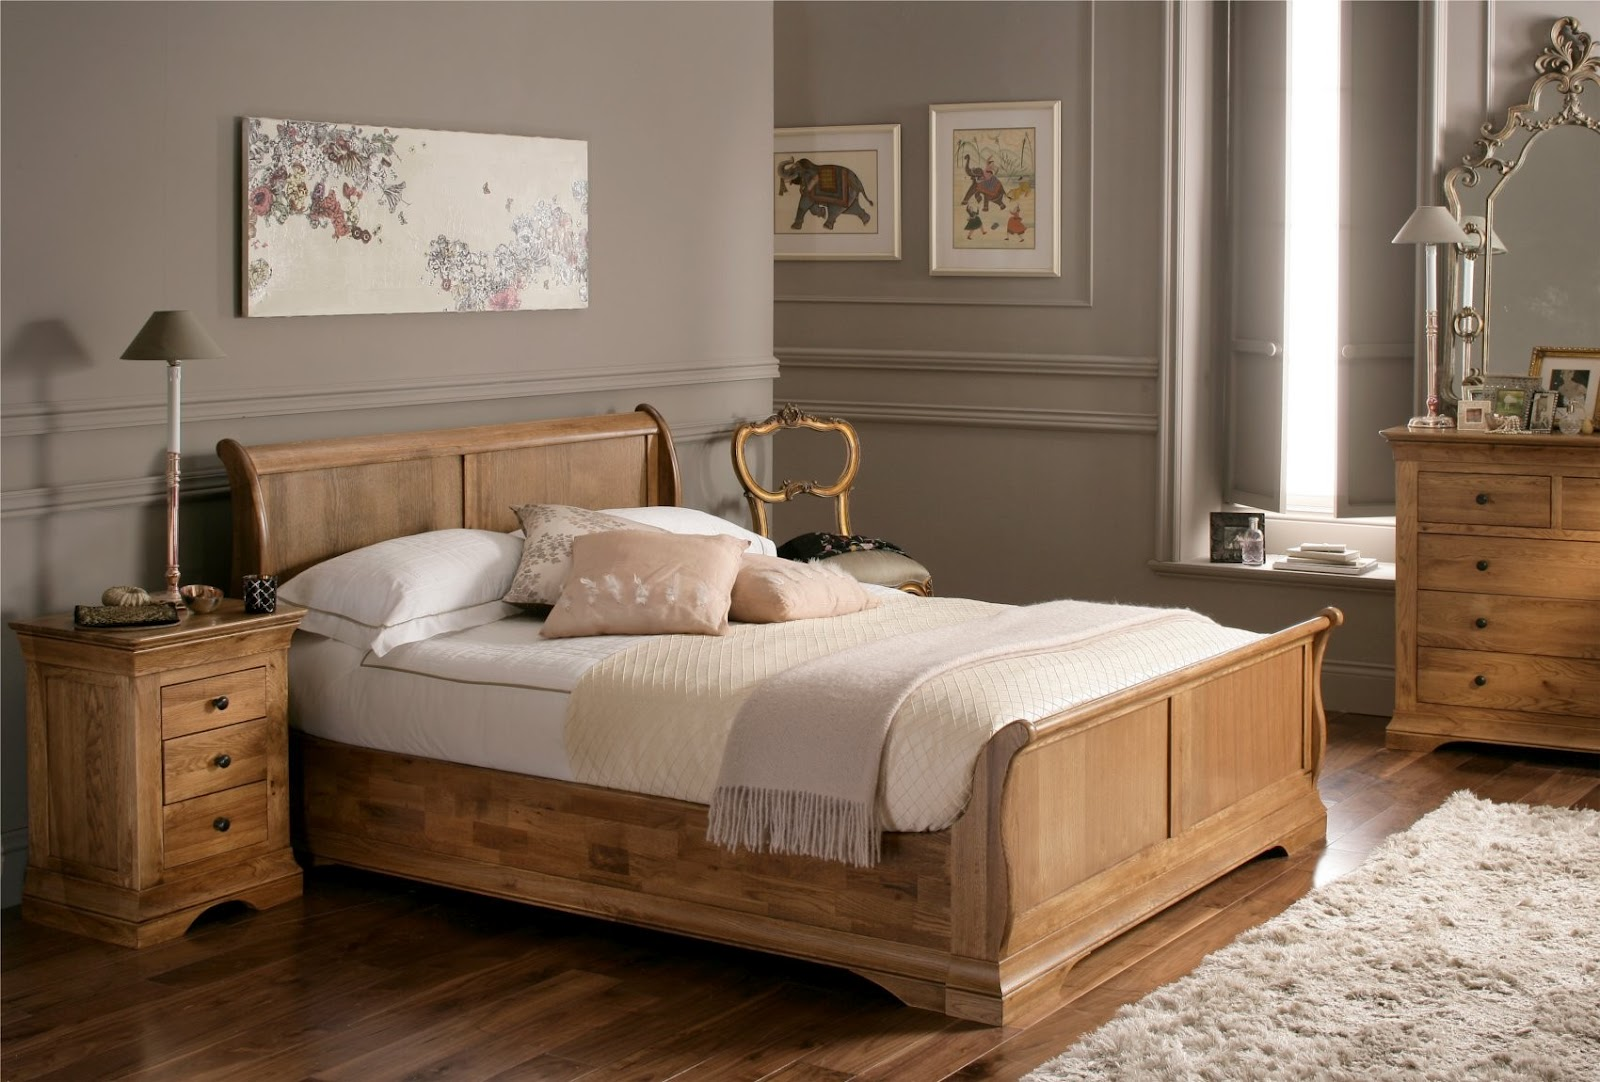 South shore decorating blog why a bed makes a bedroom a for Bedroom ideas pine furniture